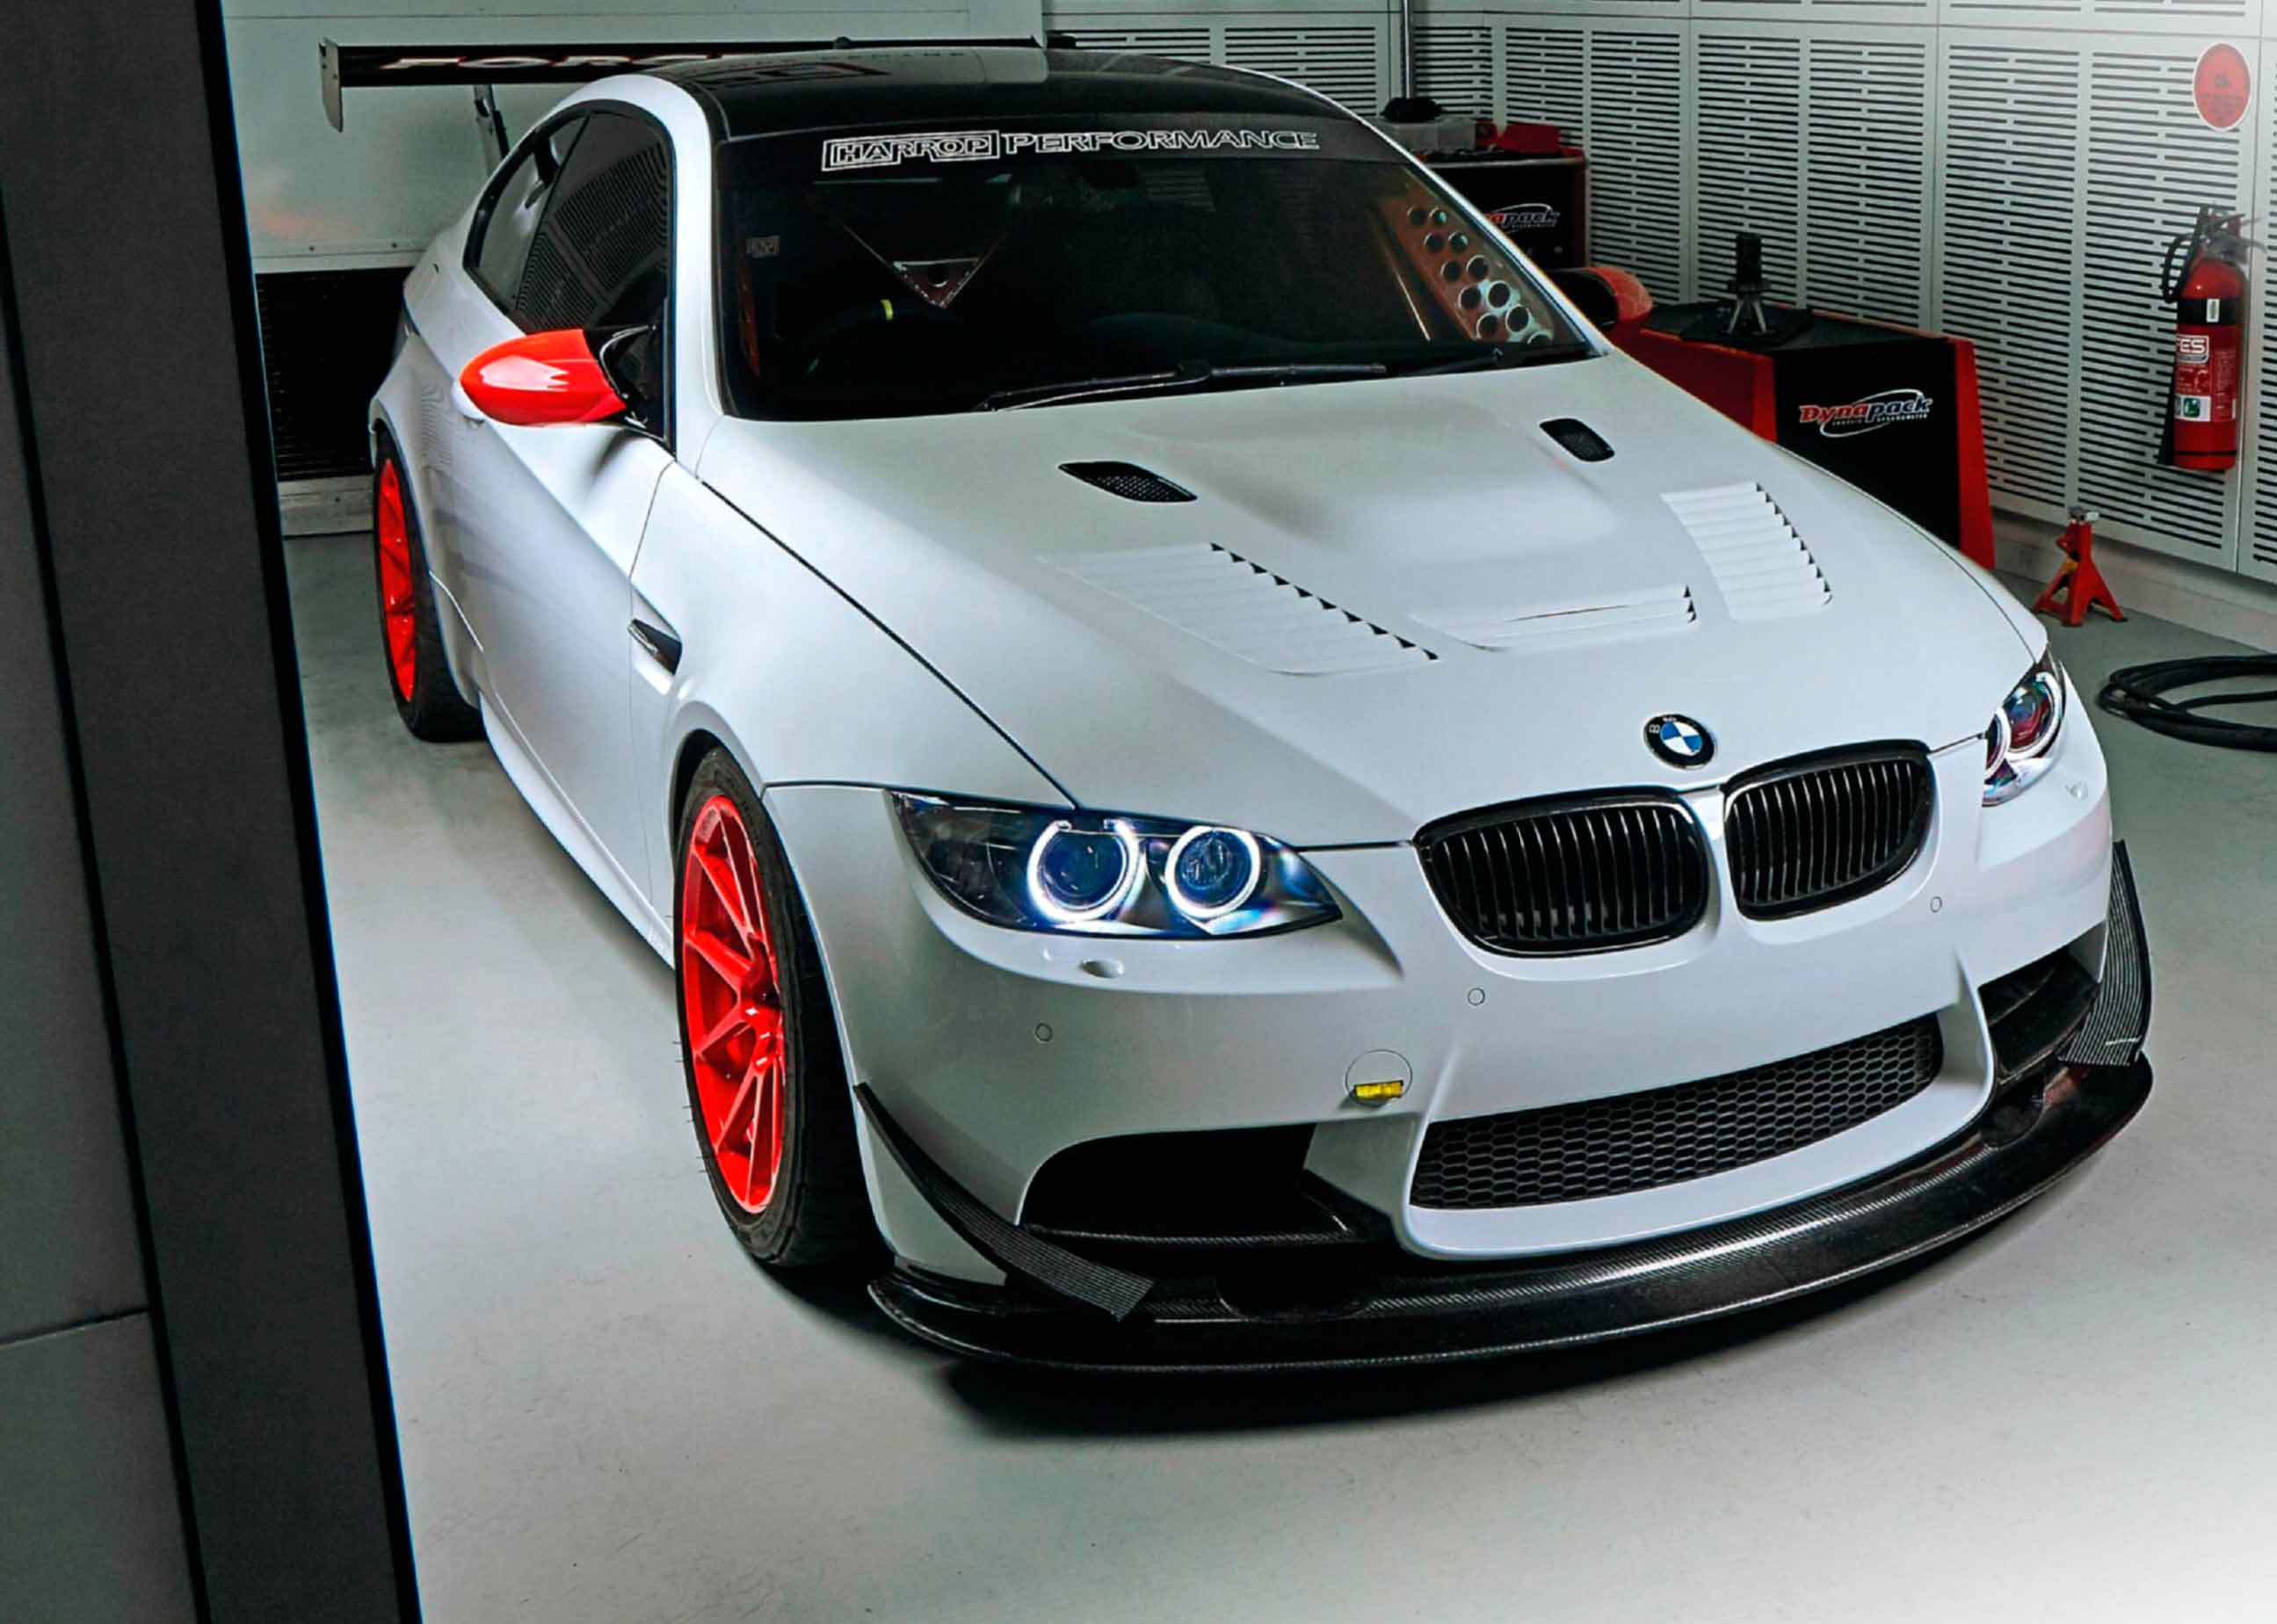 For Bmw 3 Series E90 E92 E93 M3 Blue Adjustable Rear Camber Arm Control Kit Car Tuning Styling Performance Suspension Tamil Ehowremedies Com